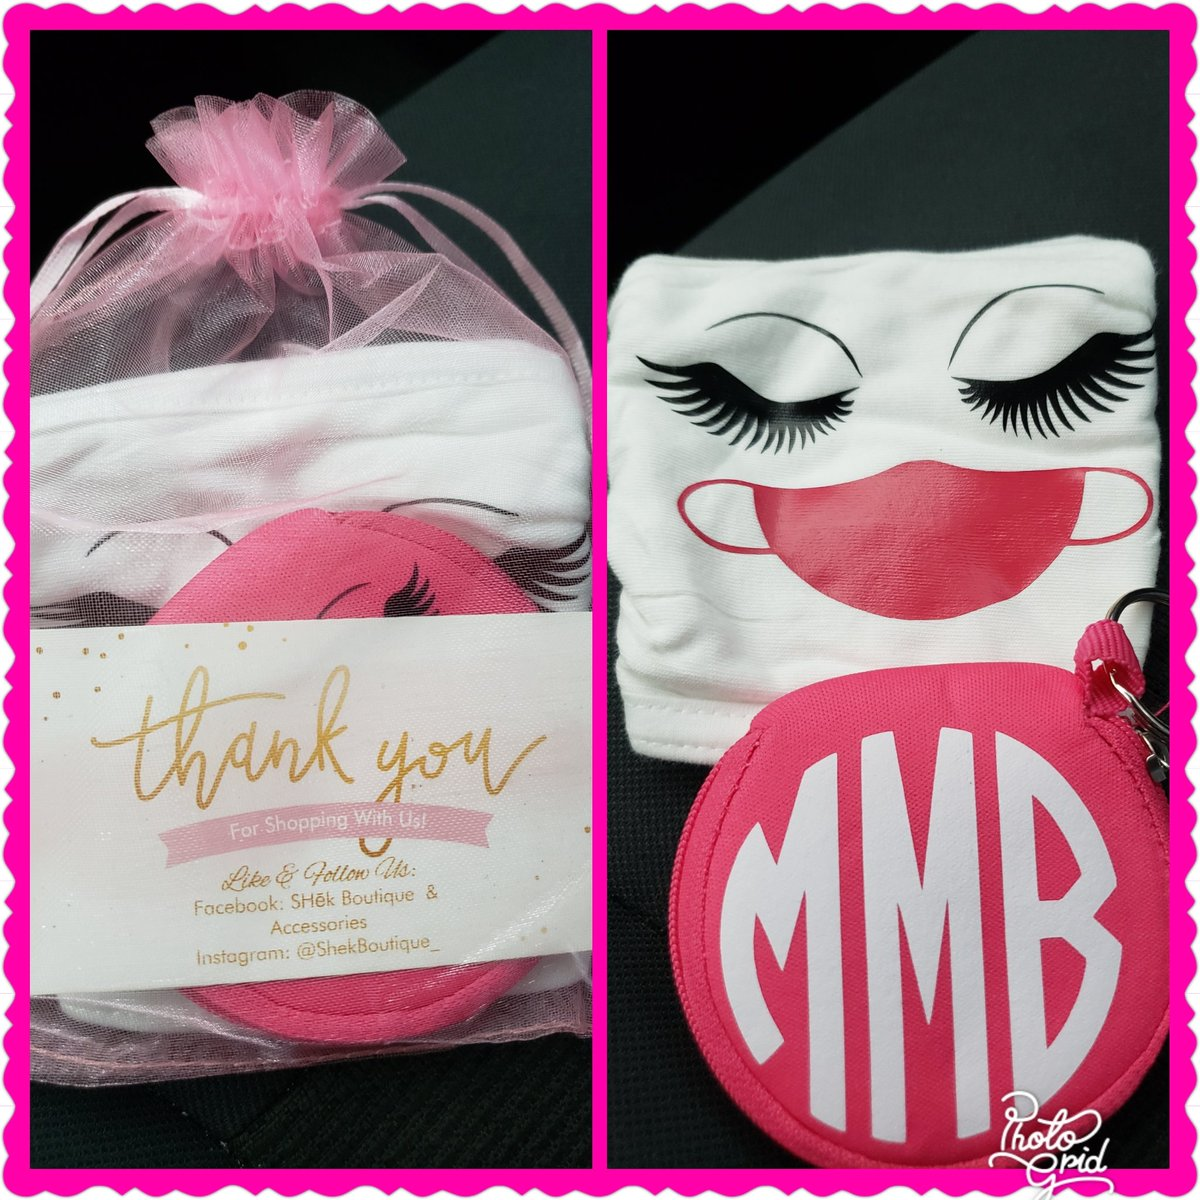 Hi guys! Have yall ordered your mask an pouch set yet? Jus recd another order frm @MzTrophyz Loven this one as well! Thanks so much sis😘😘